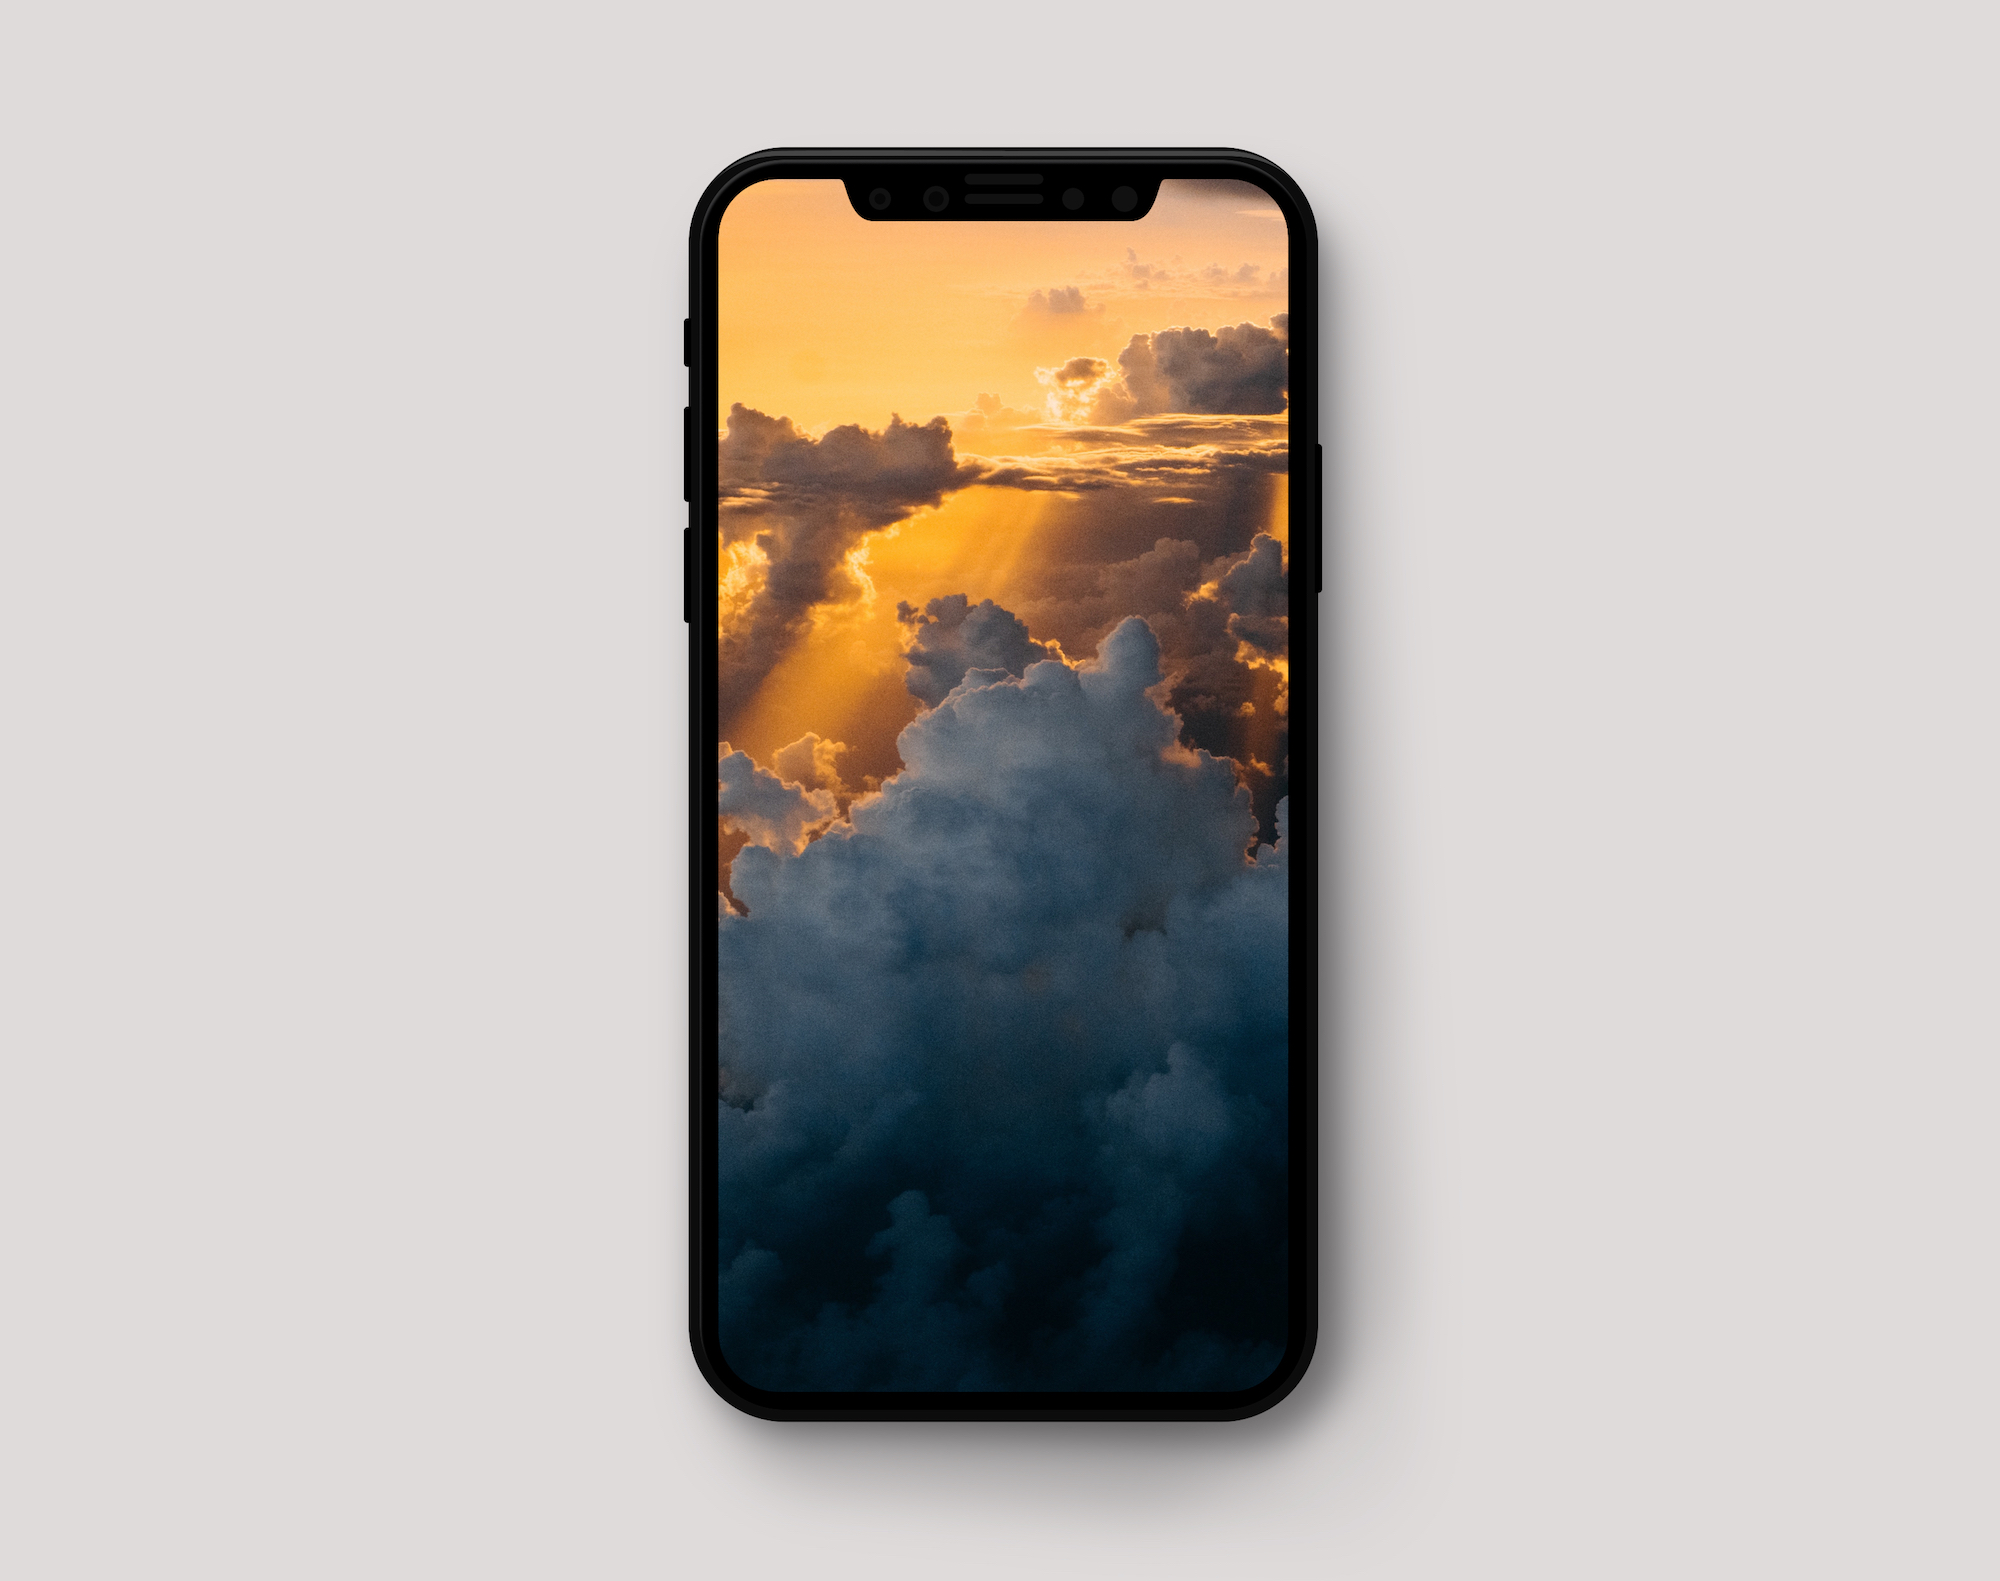 iPhone X Wallpaper Pack 3 2000x1581